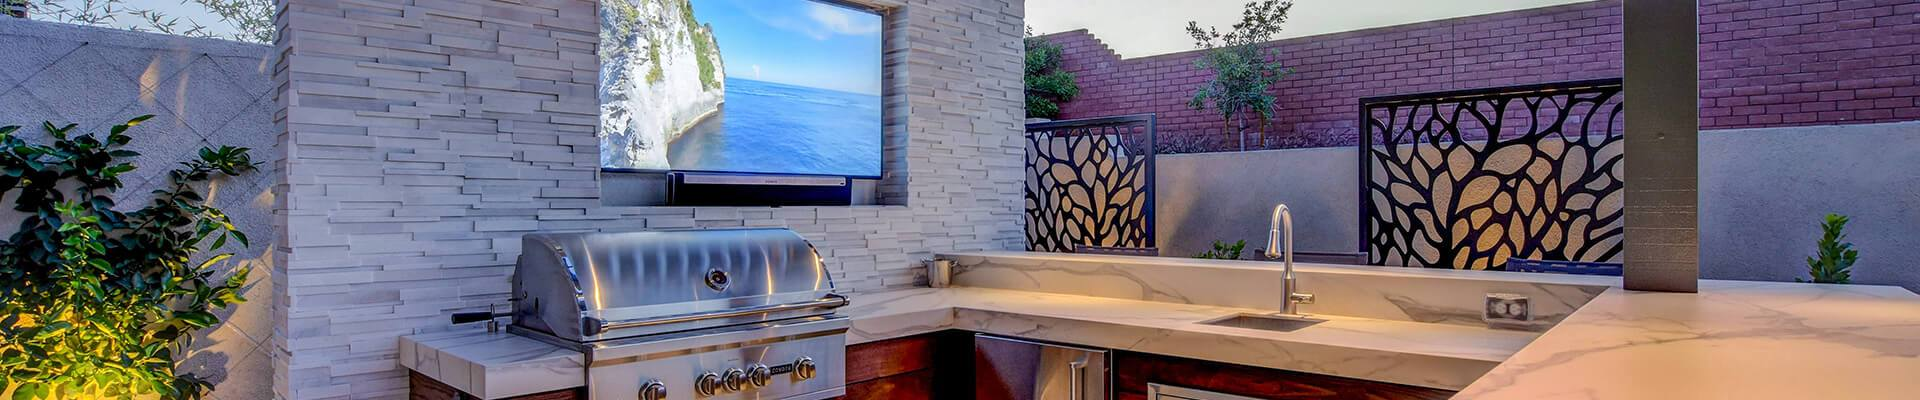 Dusk Photography of Custom Outdoor Kitchen and Outdoor Living Area with a Media Wall, and Patio by Custom Outdoor Living of Las Vegas, Nevada